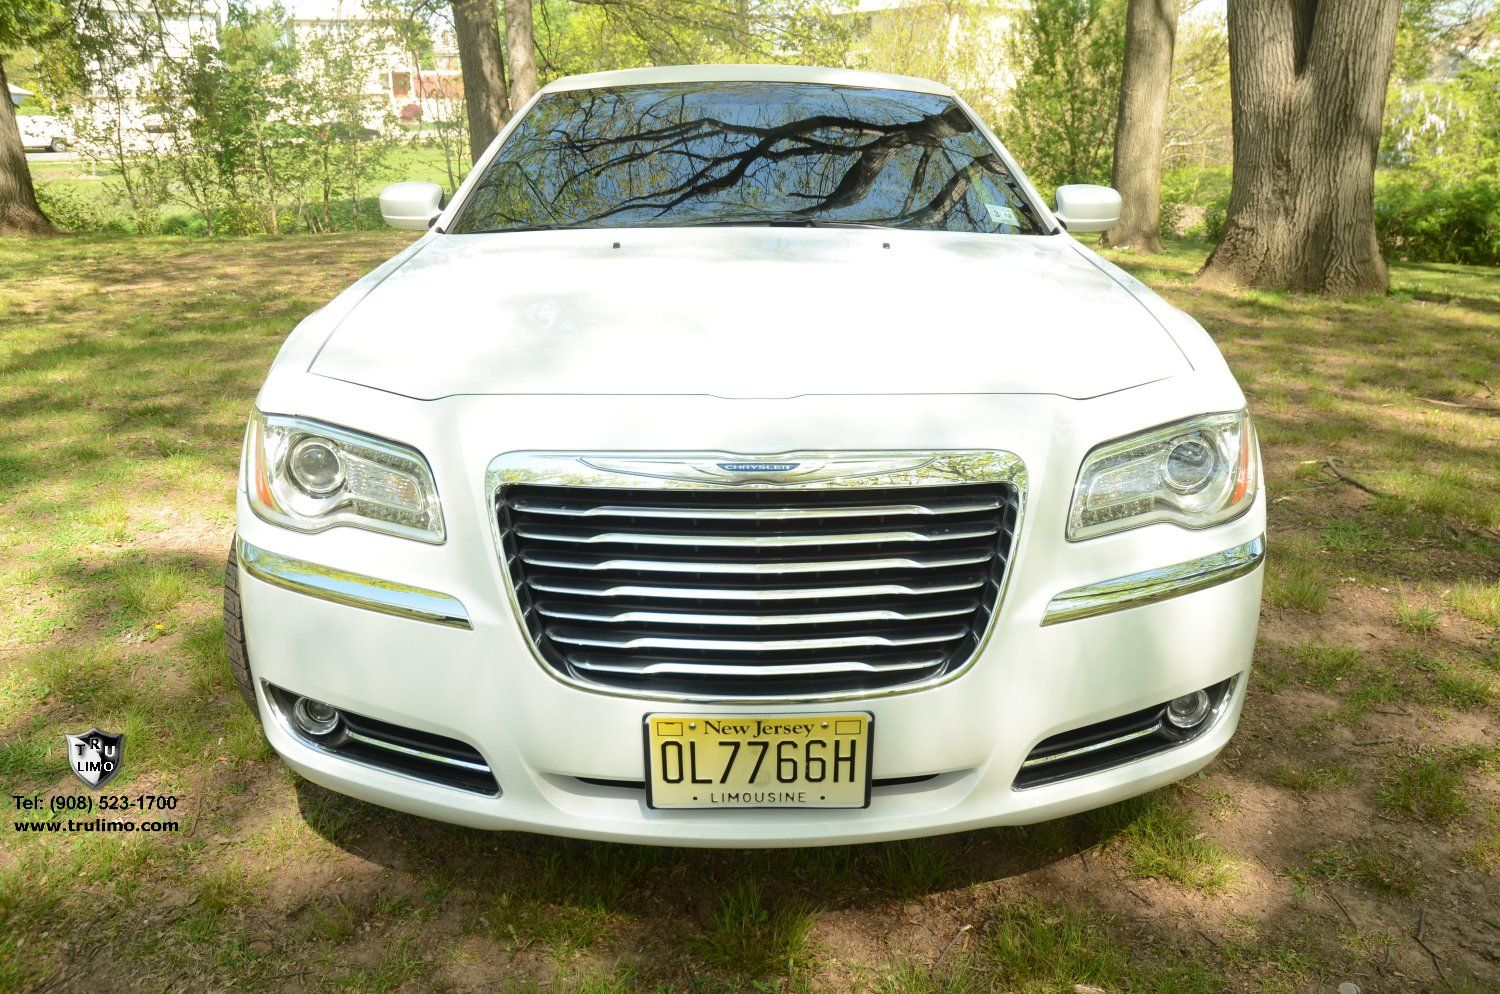 (202) 10 Passenger Chrysler 300 With Jet Doors (White) Exterior 2 » TRU LIMO & 202) 10 Passenger Chrysler 300 With Jet Doors (White) Exterior 2 ... Pezcame.Com